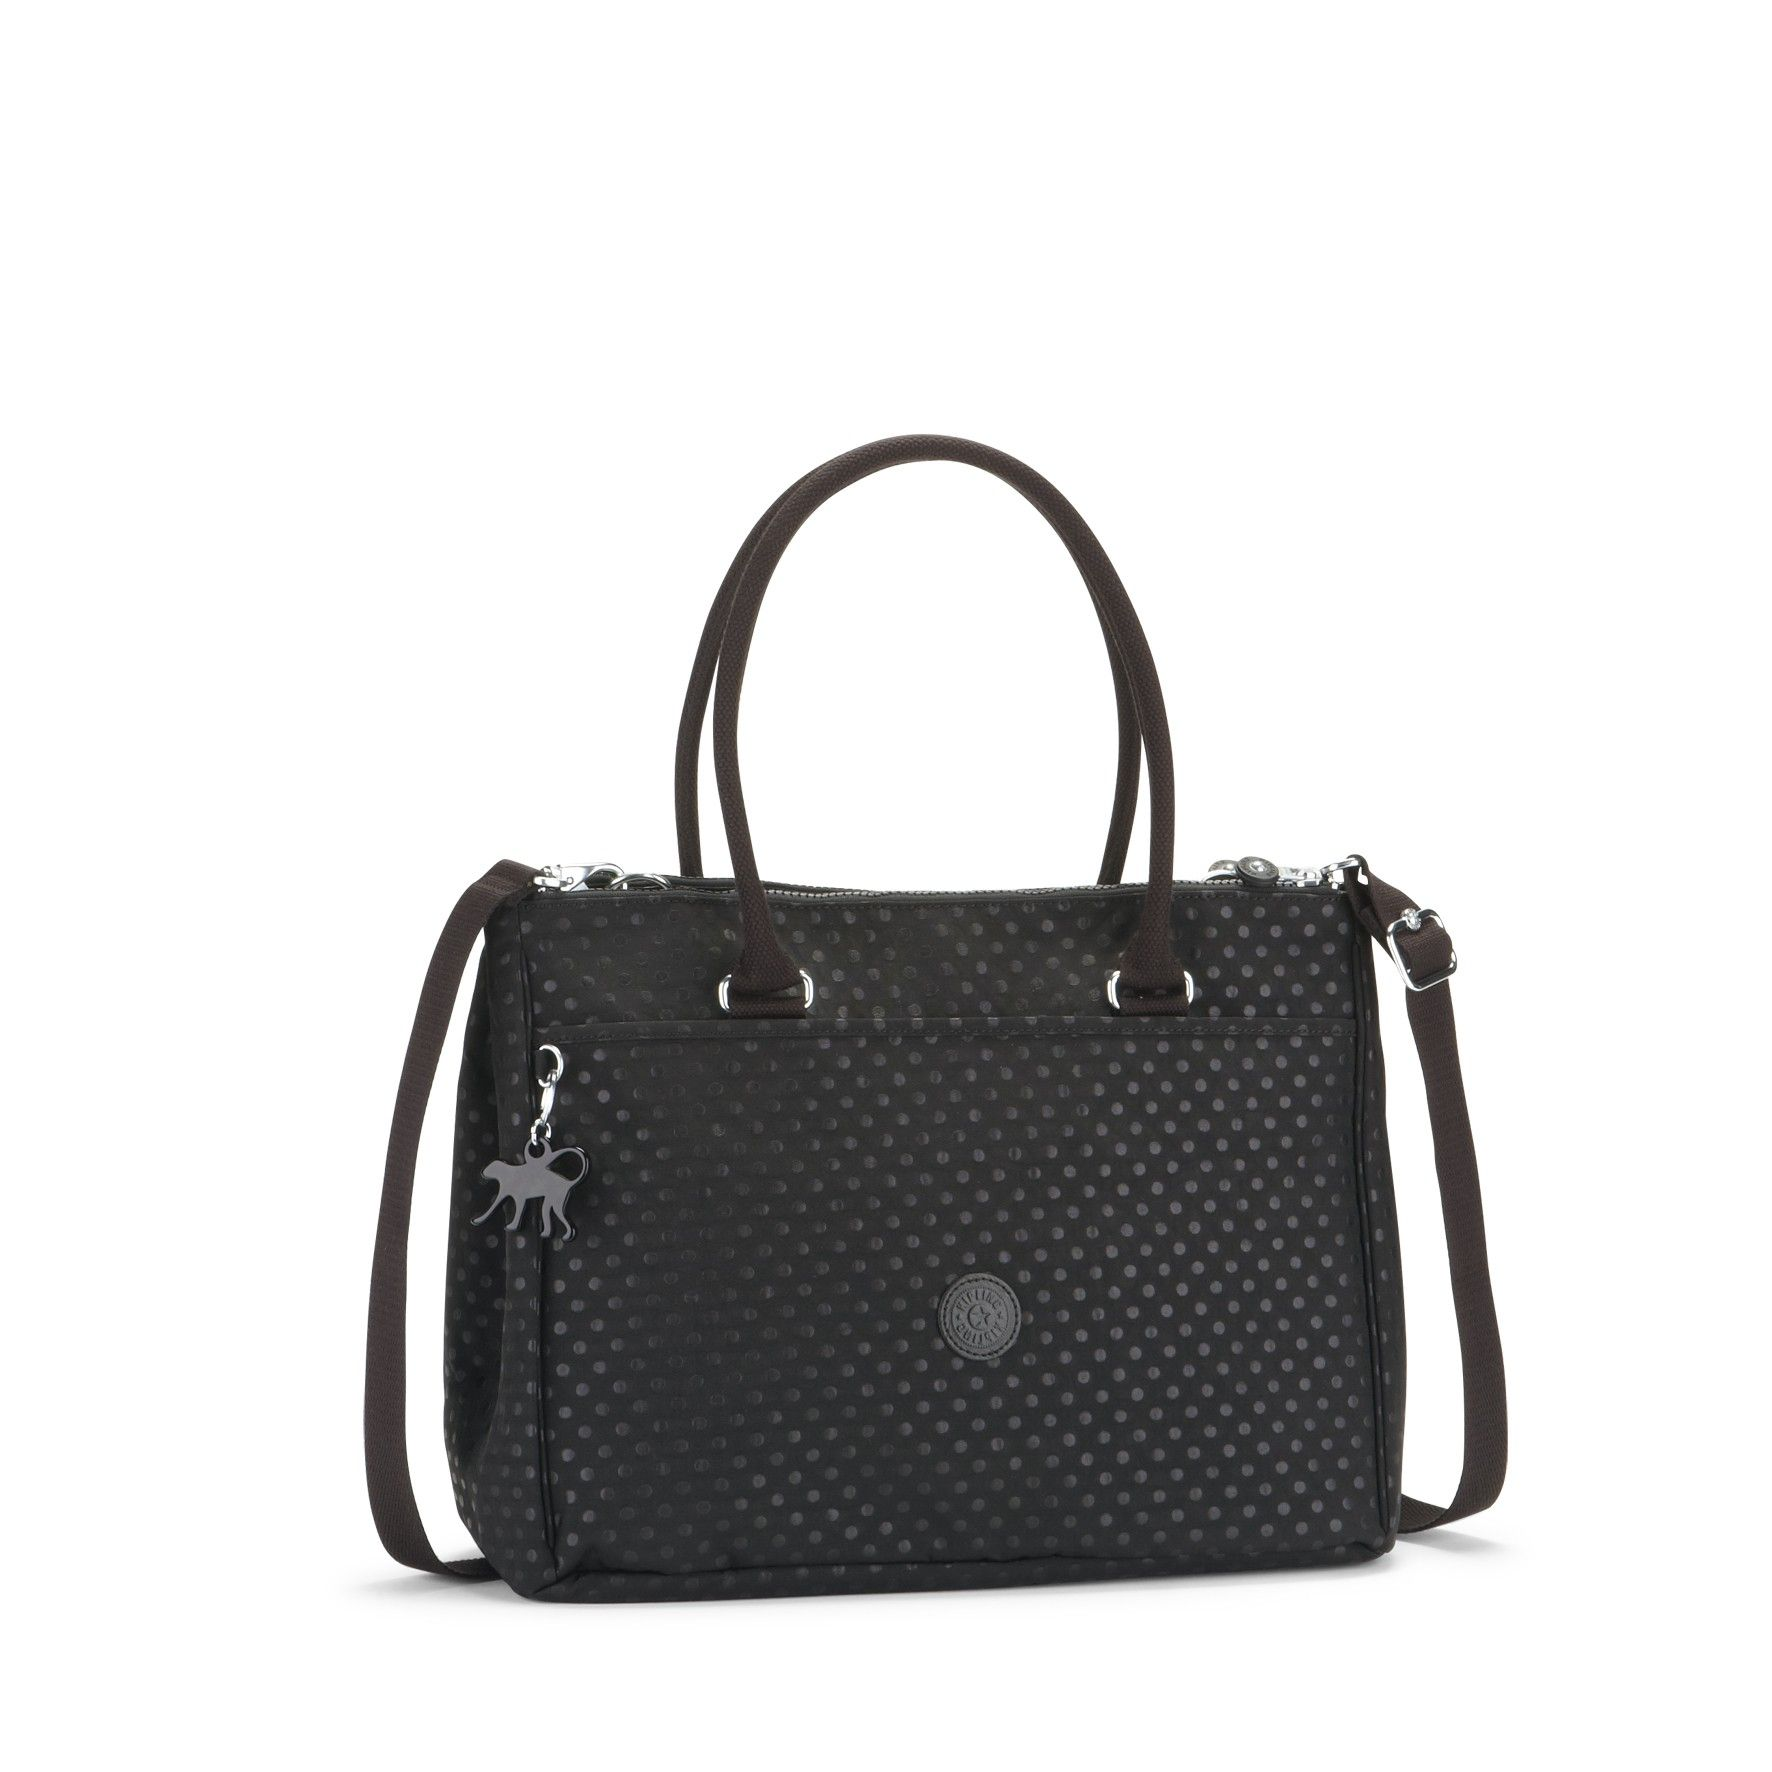 Kipling - NEW HALIA - Black Dots A4 Shoulder Bag